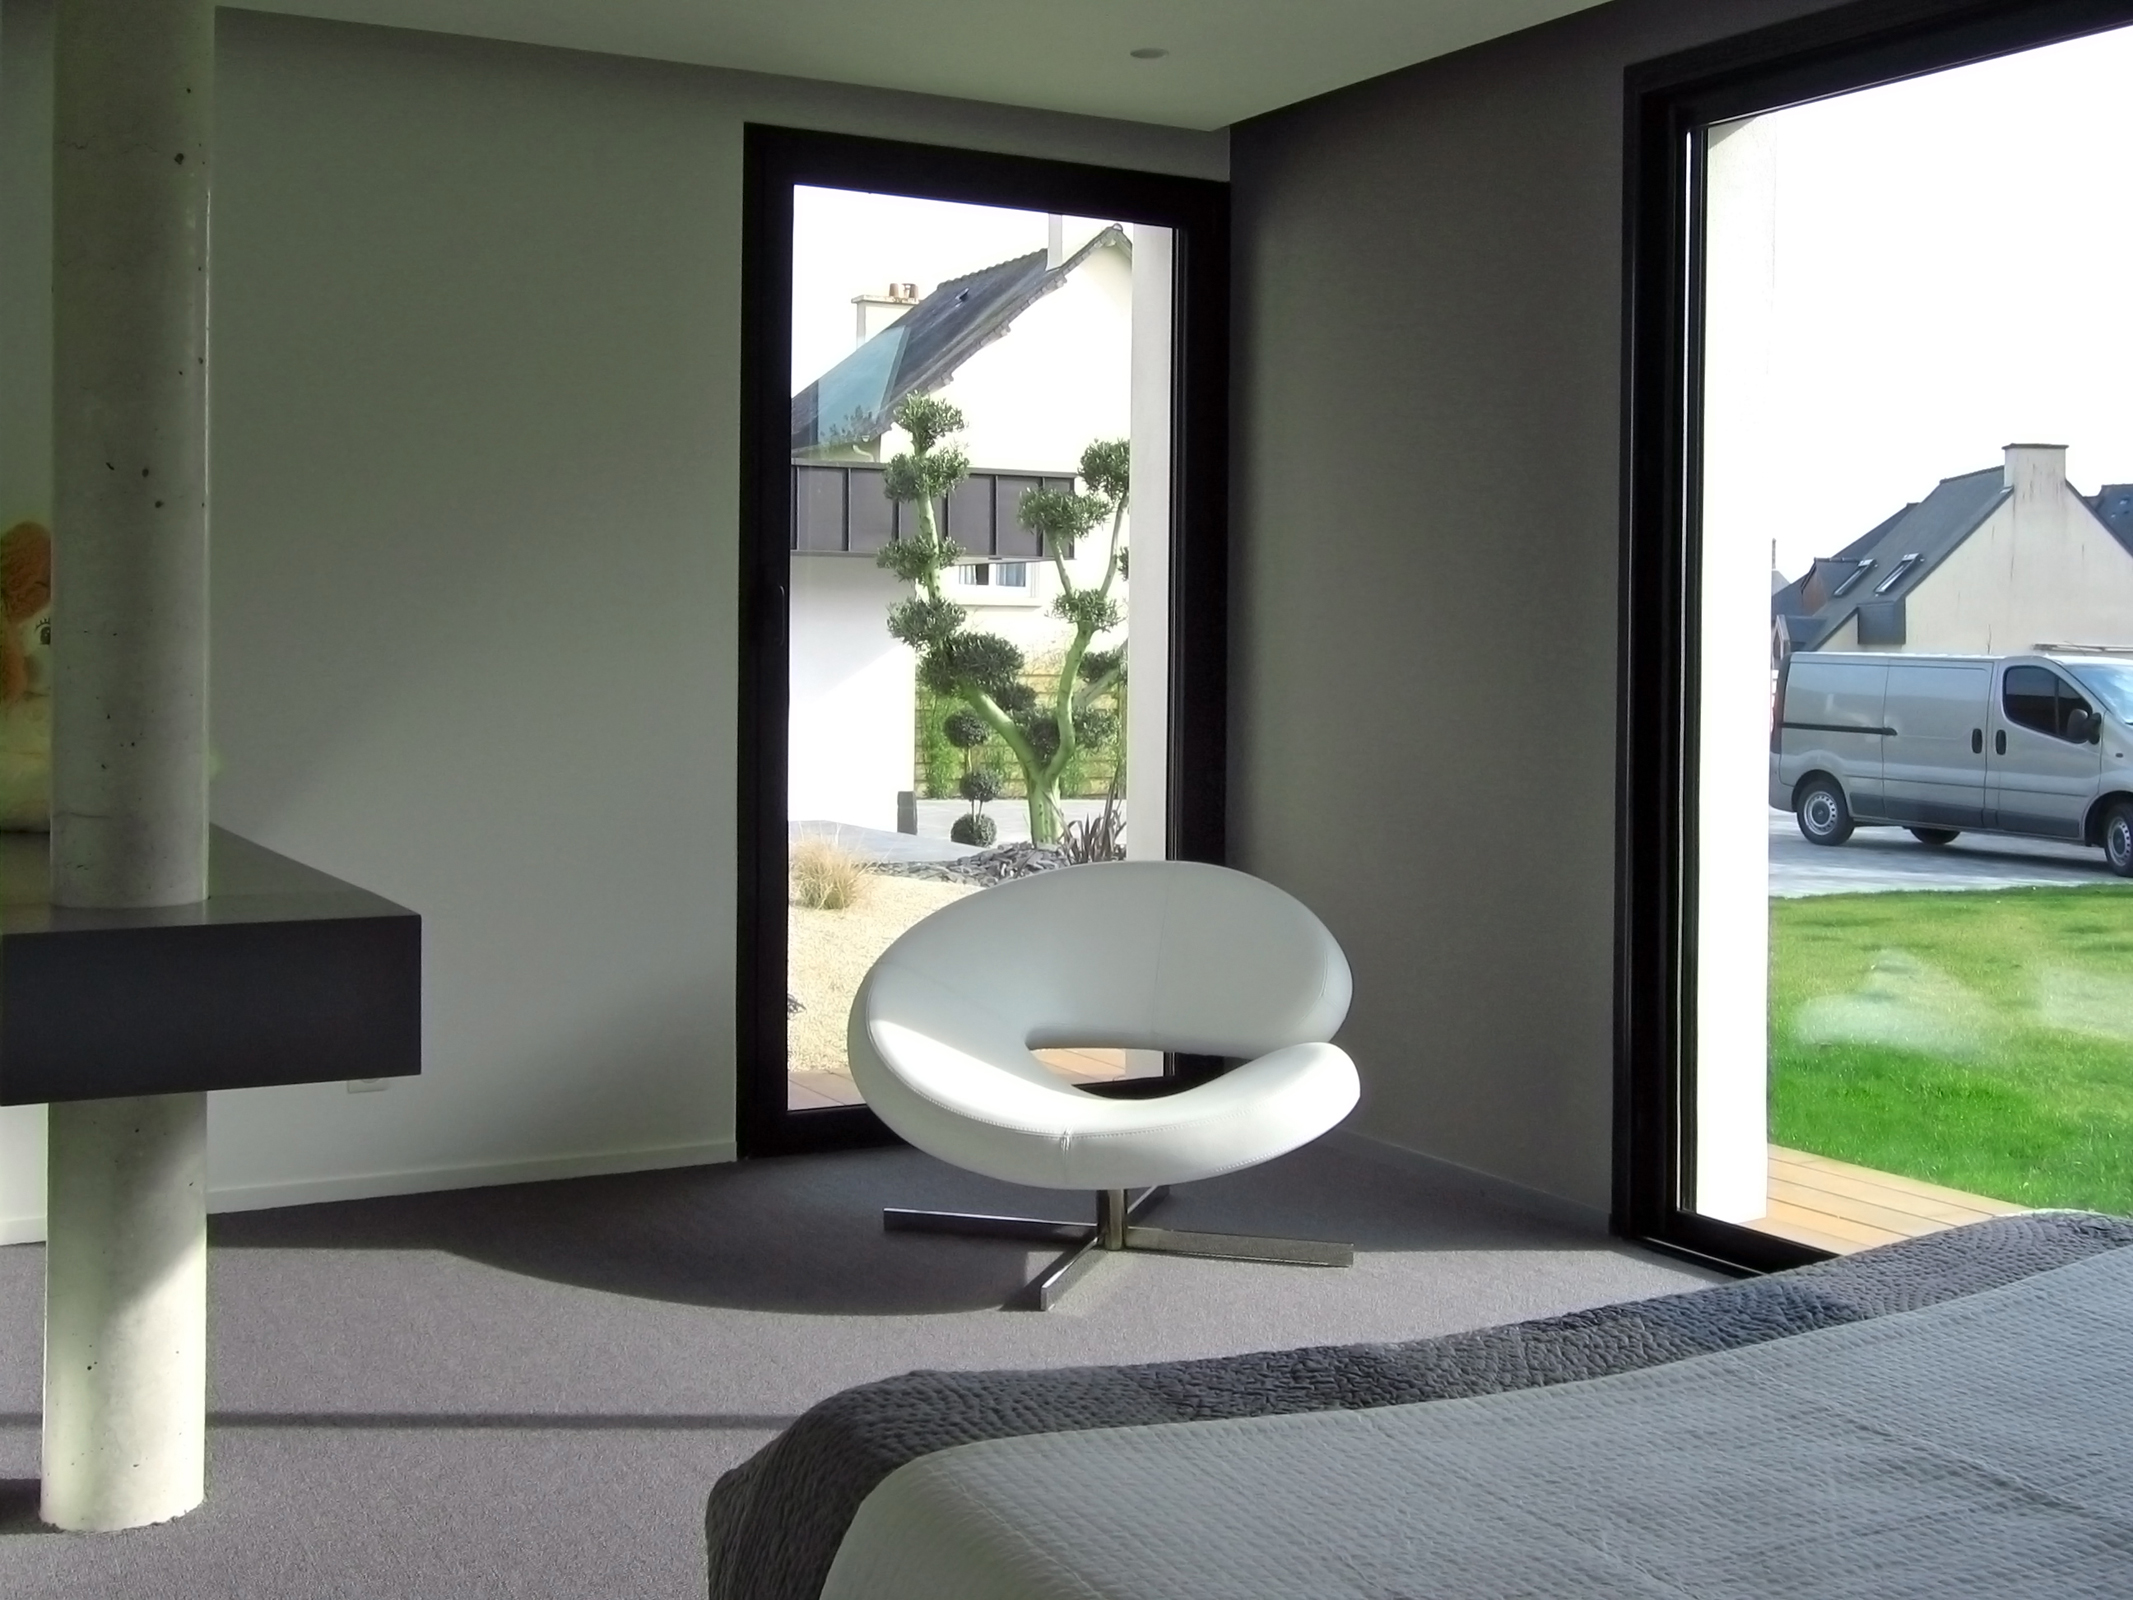 amenagement interieur maison maison moderne. Black Bedroom Furniture Sets. Home Design Ideas